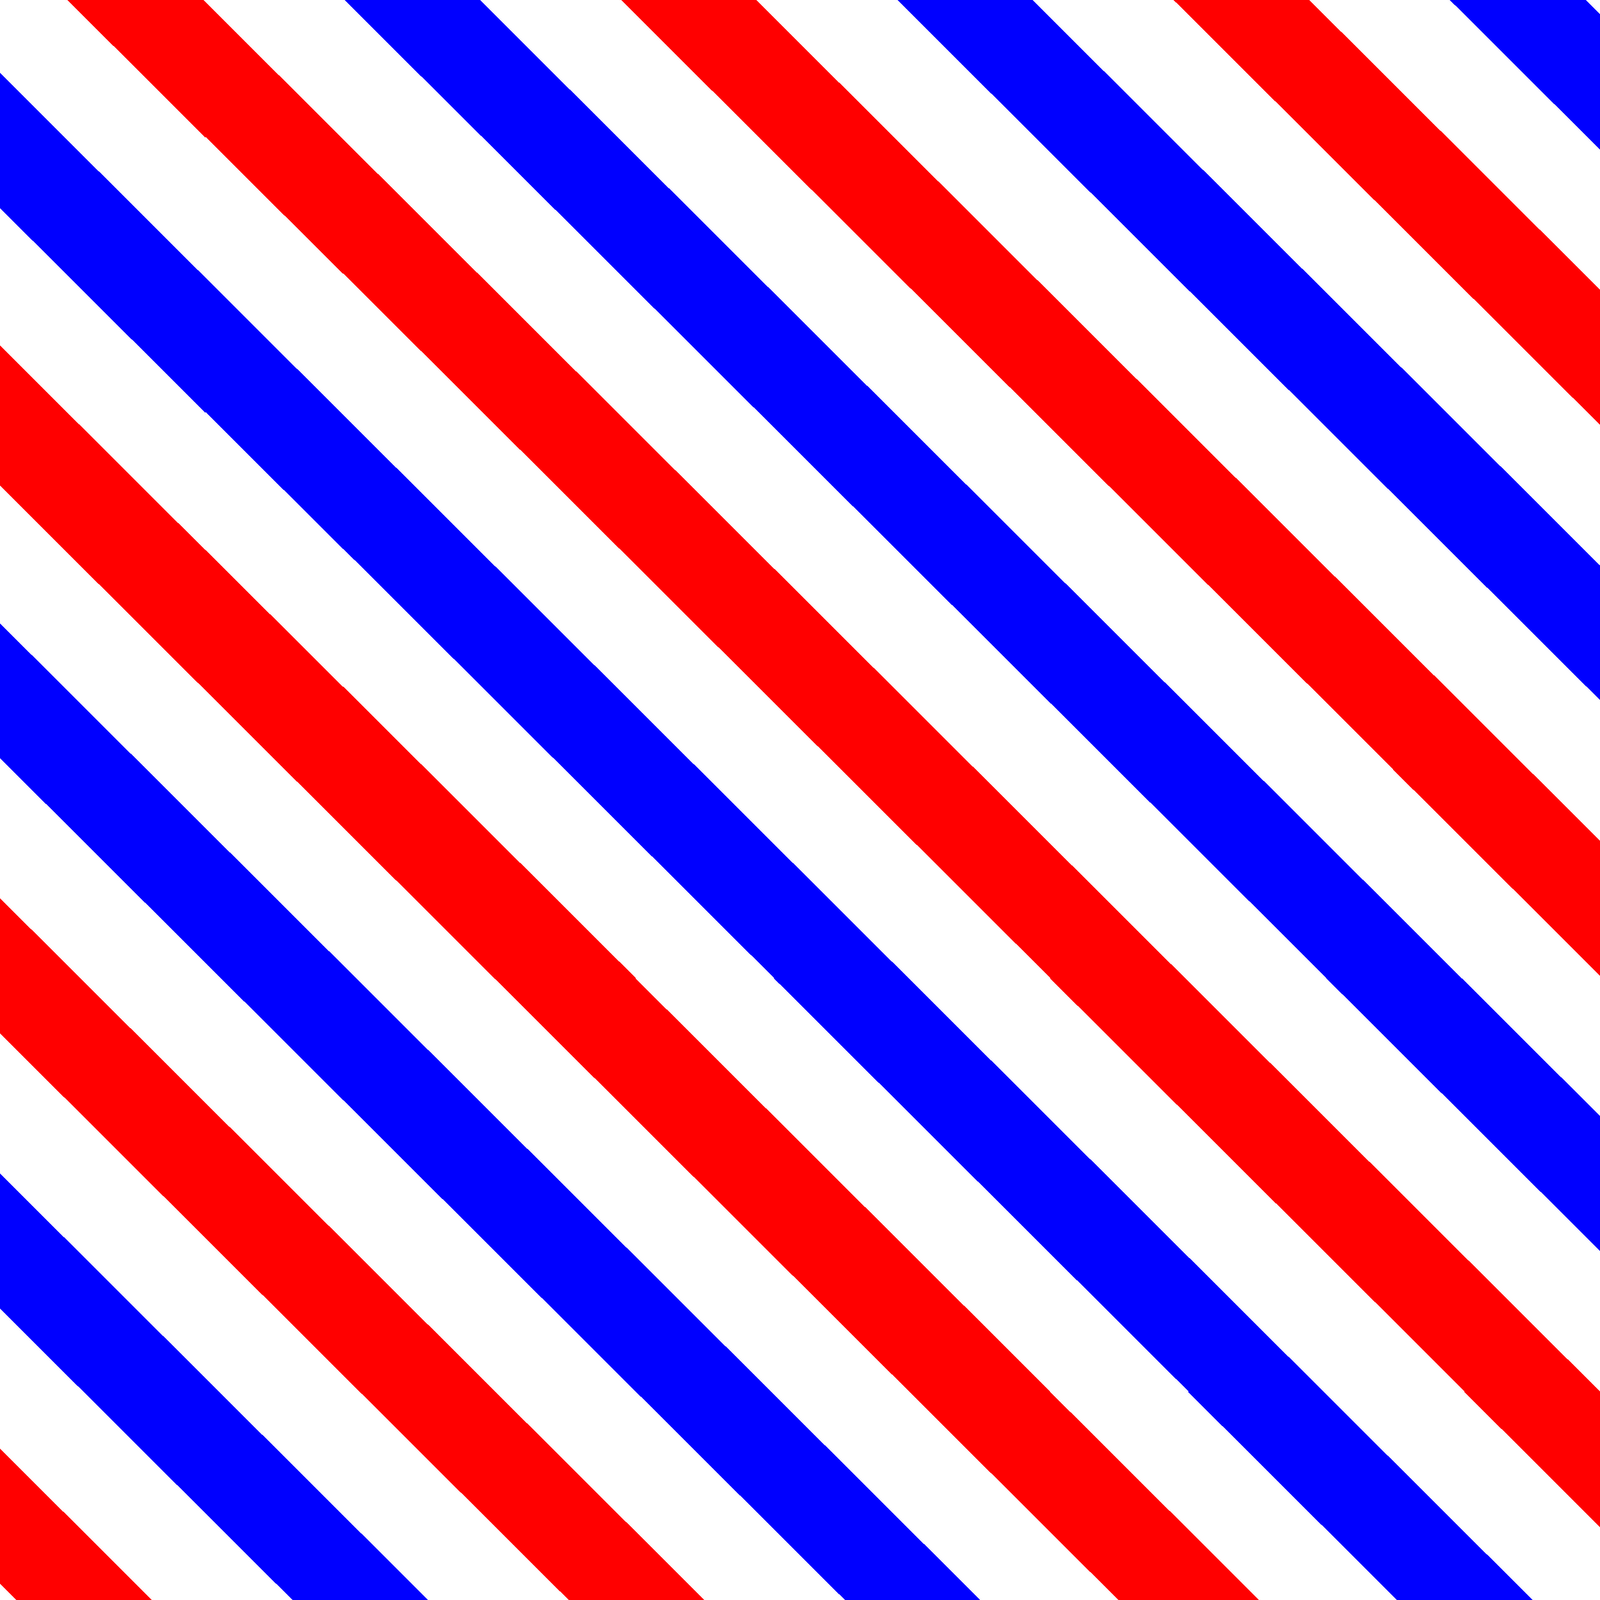 Red And White Patterned Wallpaper: Download Blue Red And White Striped Wallpaper Gallery